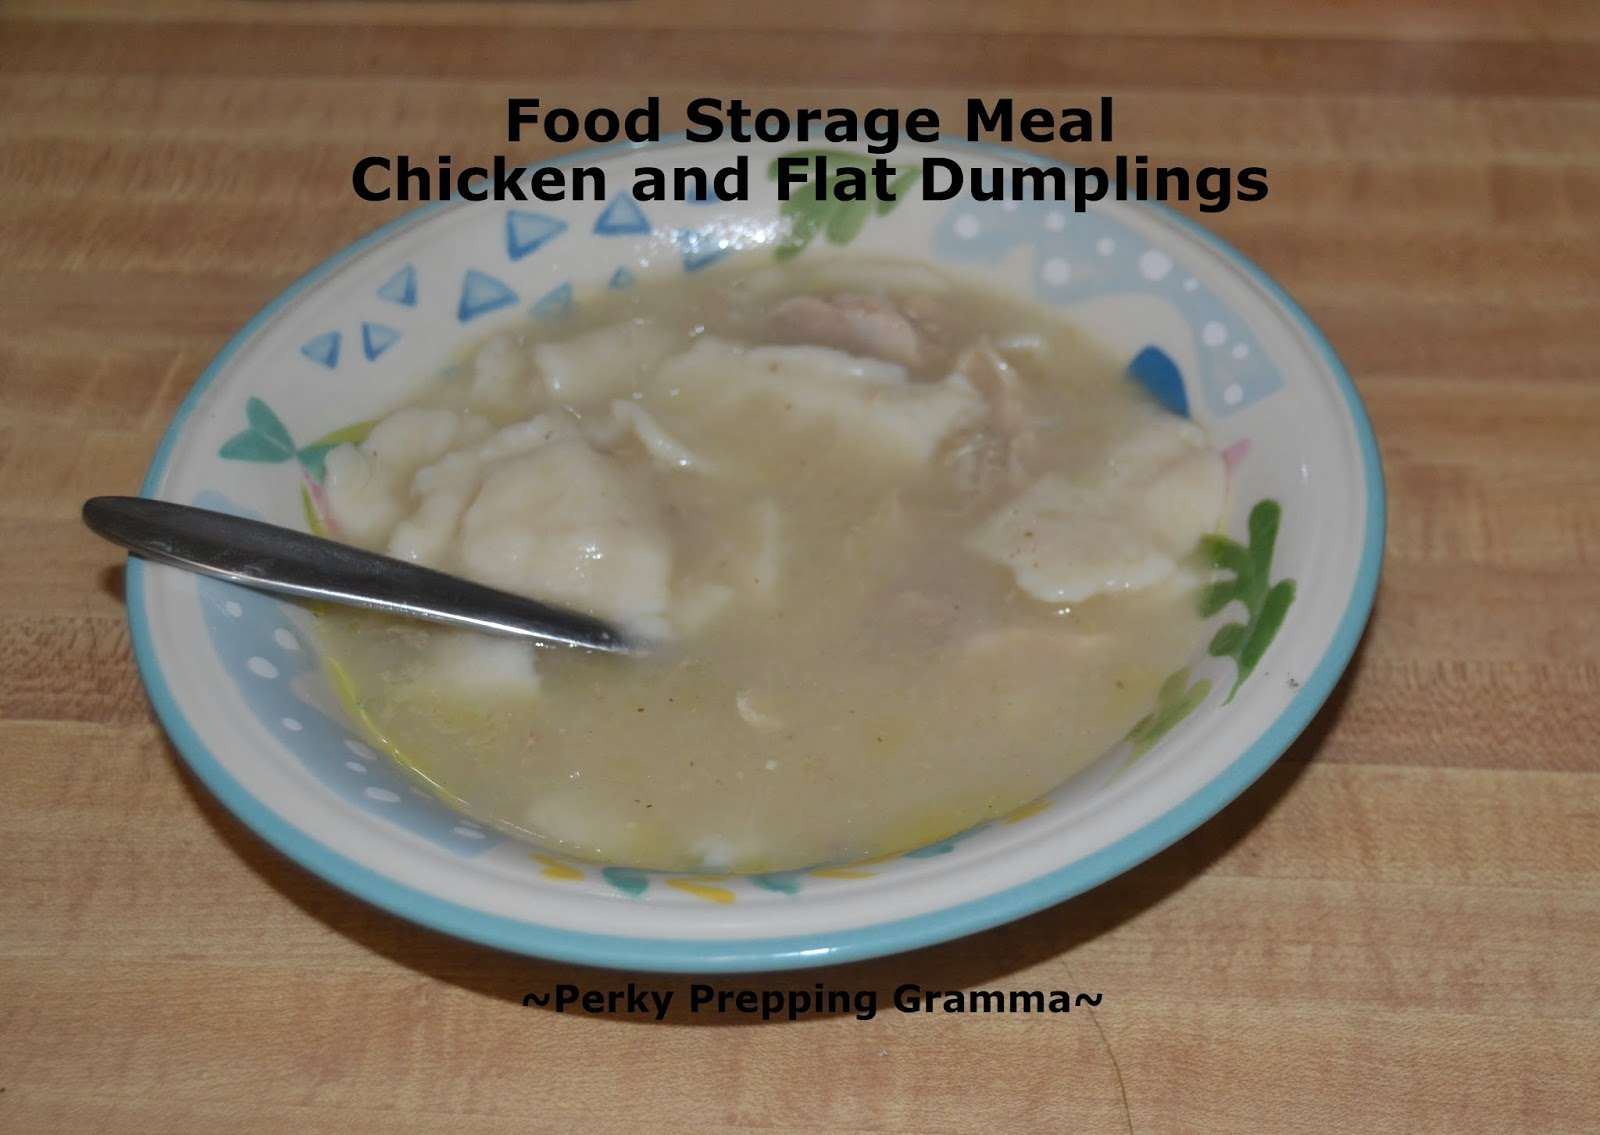 Perky prepping gramma chicken dumplings food storage meal i stored jiffy mix yes now i have all the ingredients to make them now i just use one batch of my biscuit recipe and the very first thing i learned to forumfinder Image collections